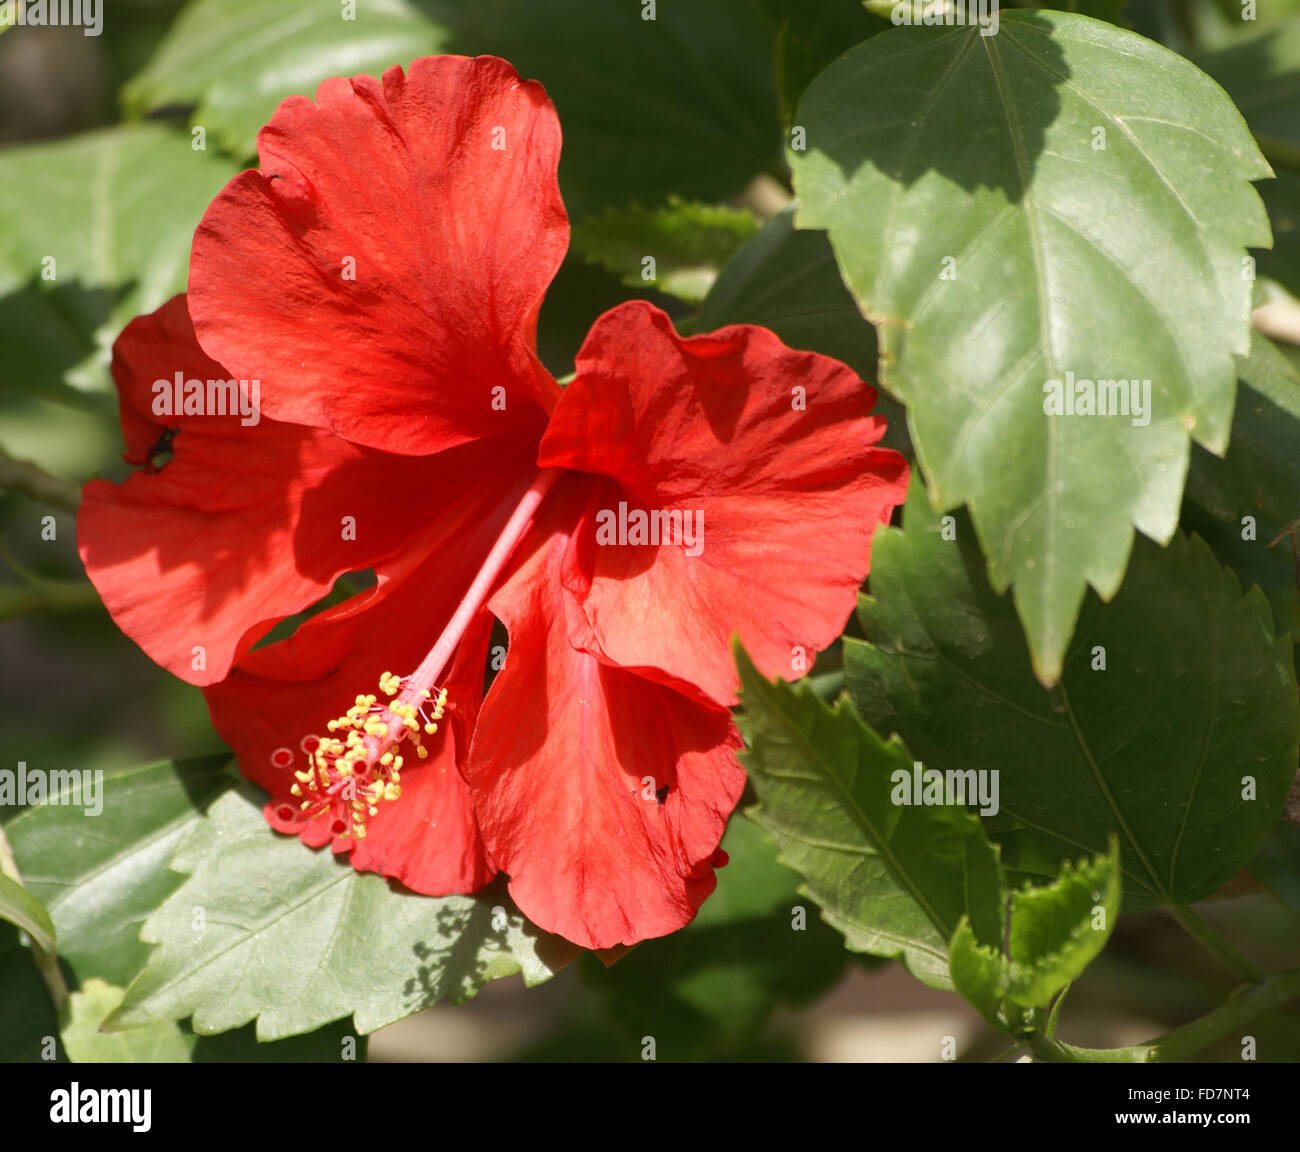 Hibiscus Rosa Sinensis China Rose Evergreen Ornamental Shrub Or